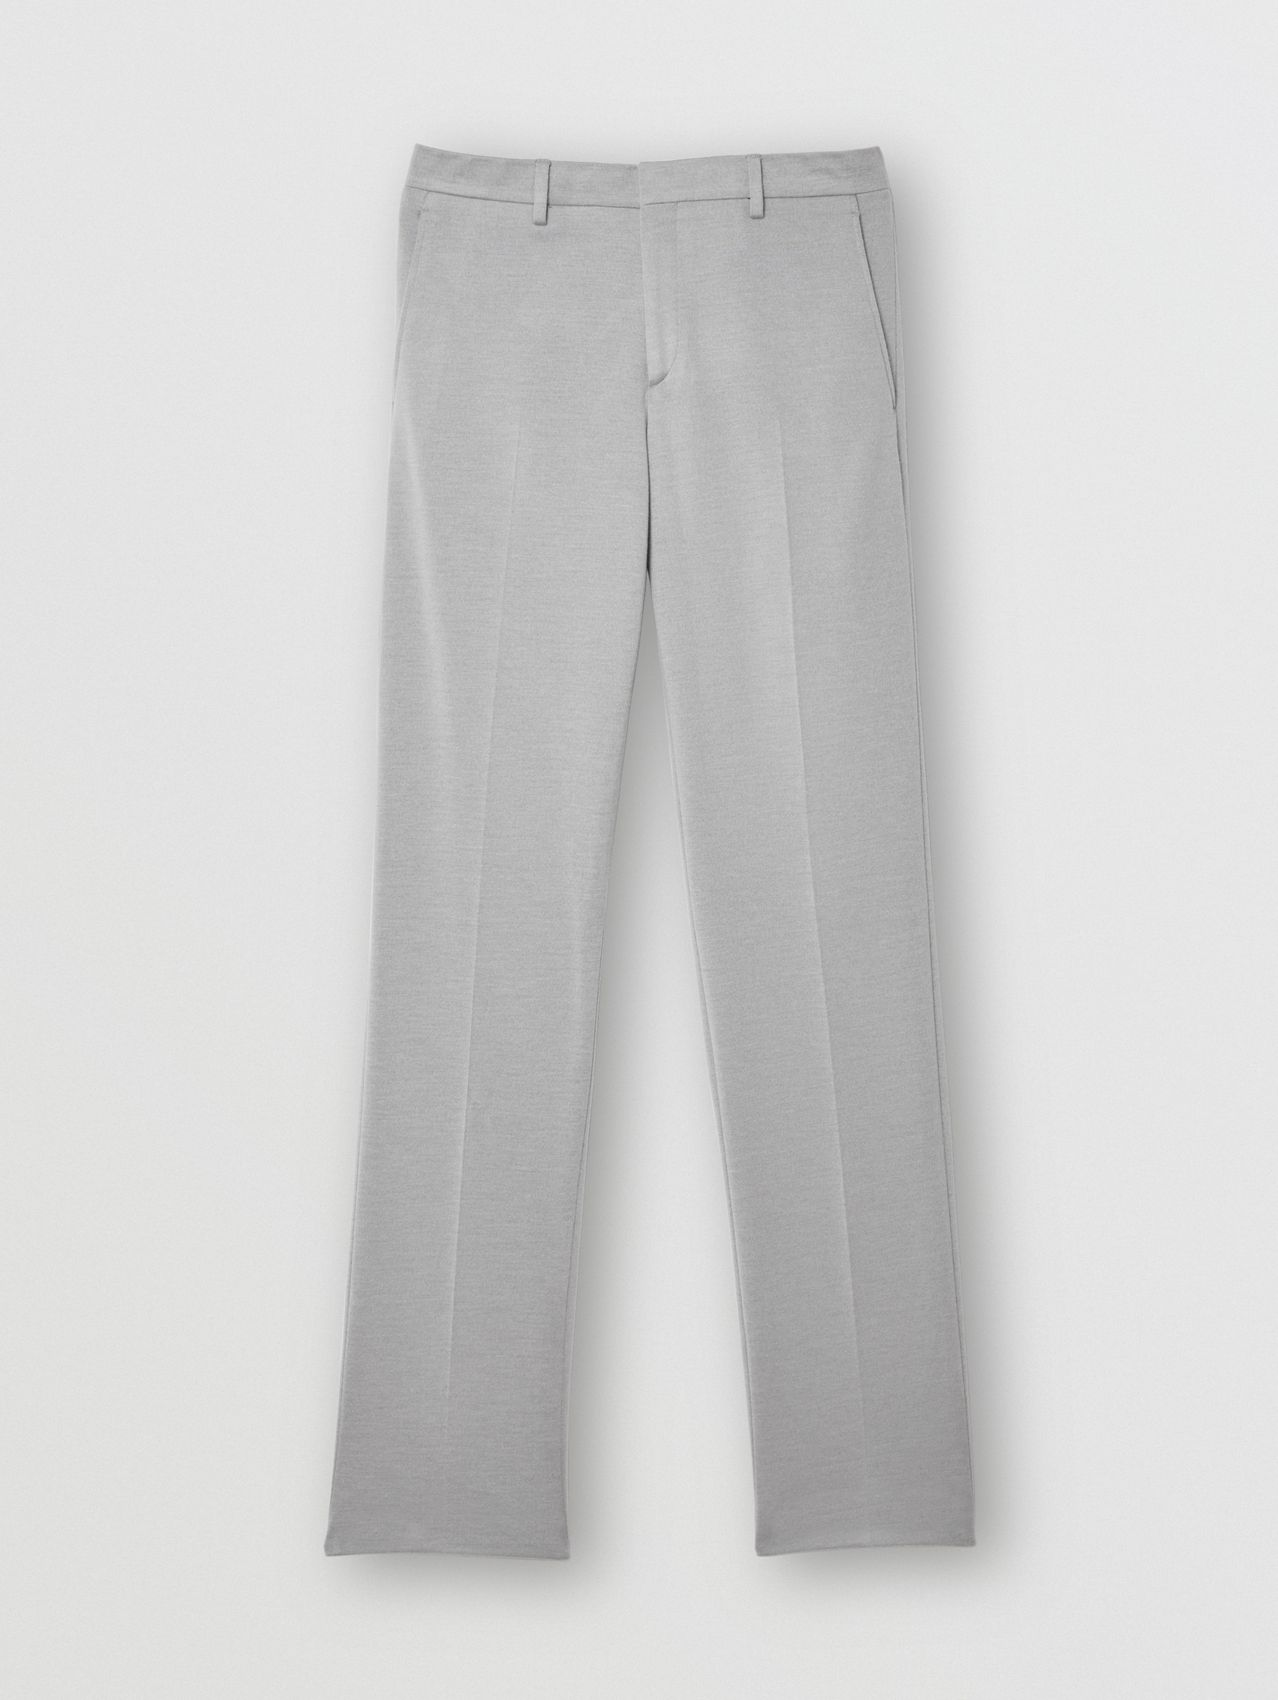 English Fit Cashmere Silk Jersey Tailored Trousers (Light Pebble Grey)